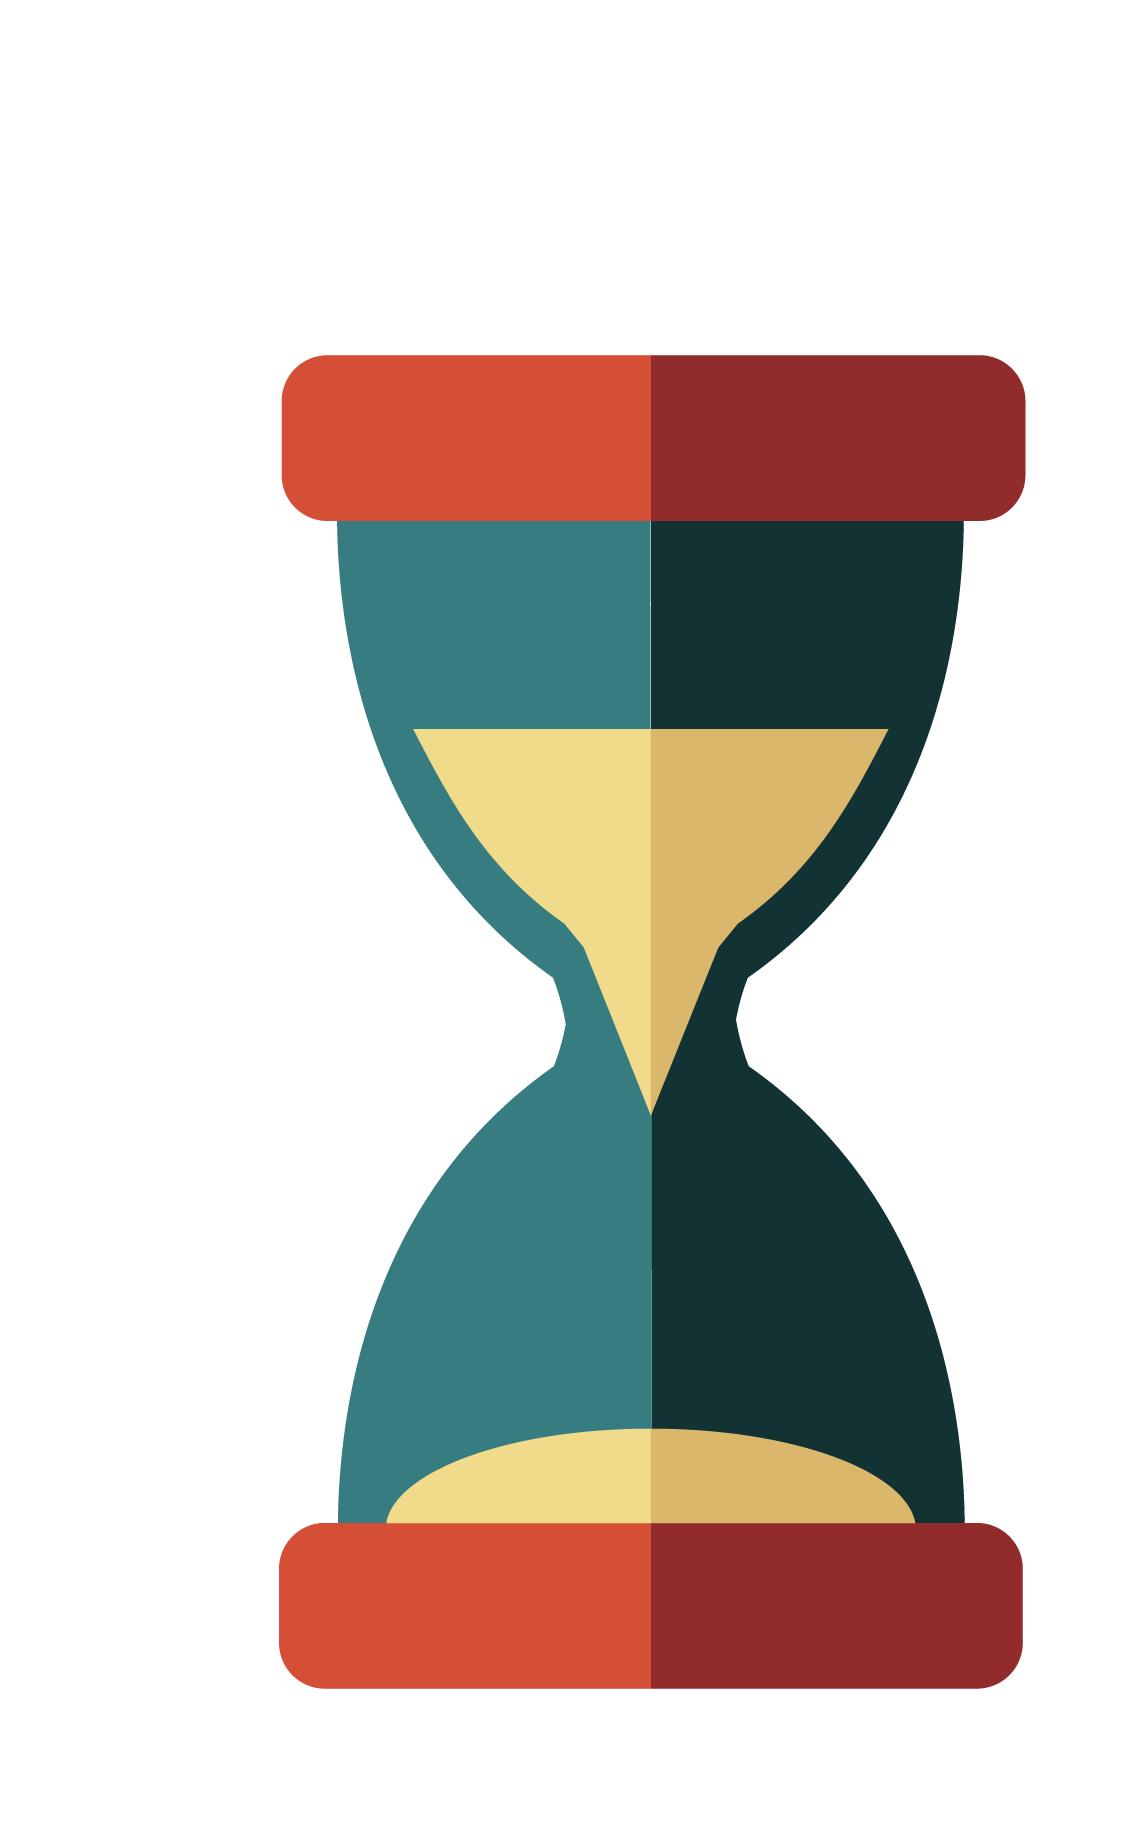 Hourglass clipart png. Flat clip arts for